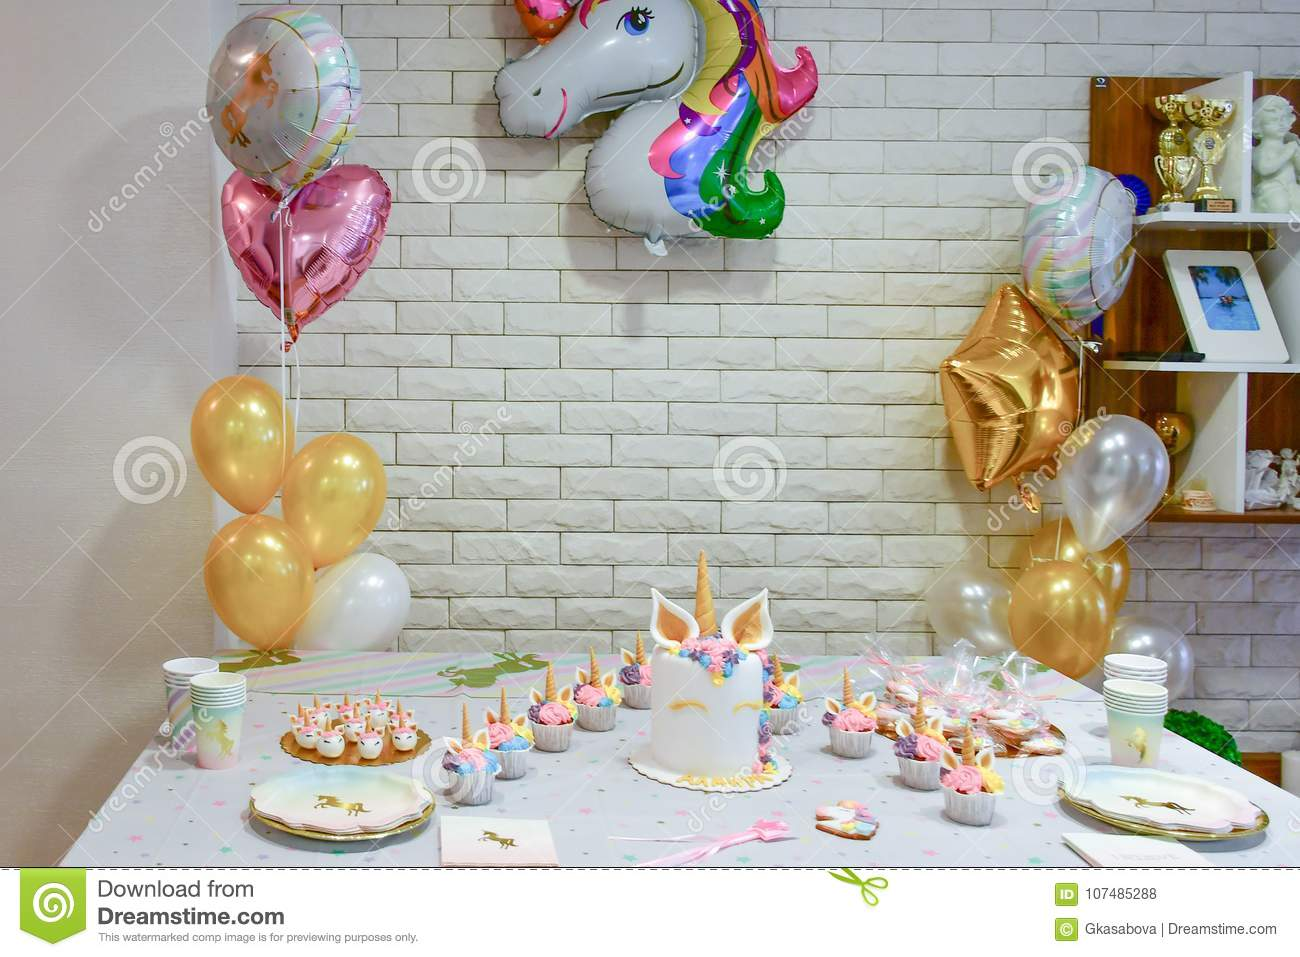 Unicorn party cupcake stock photo. Image of kids, color - 17